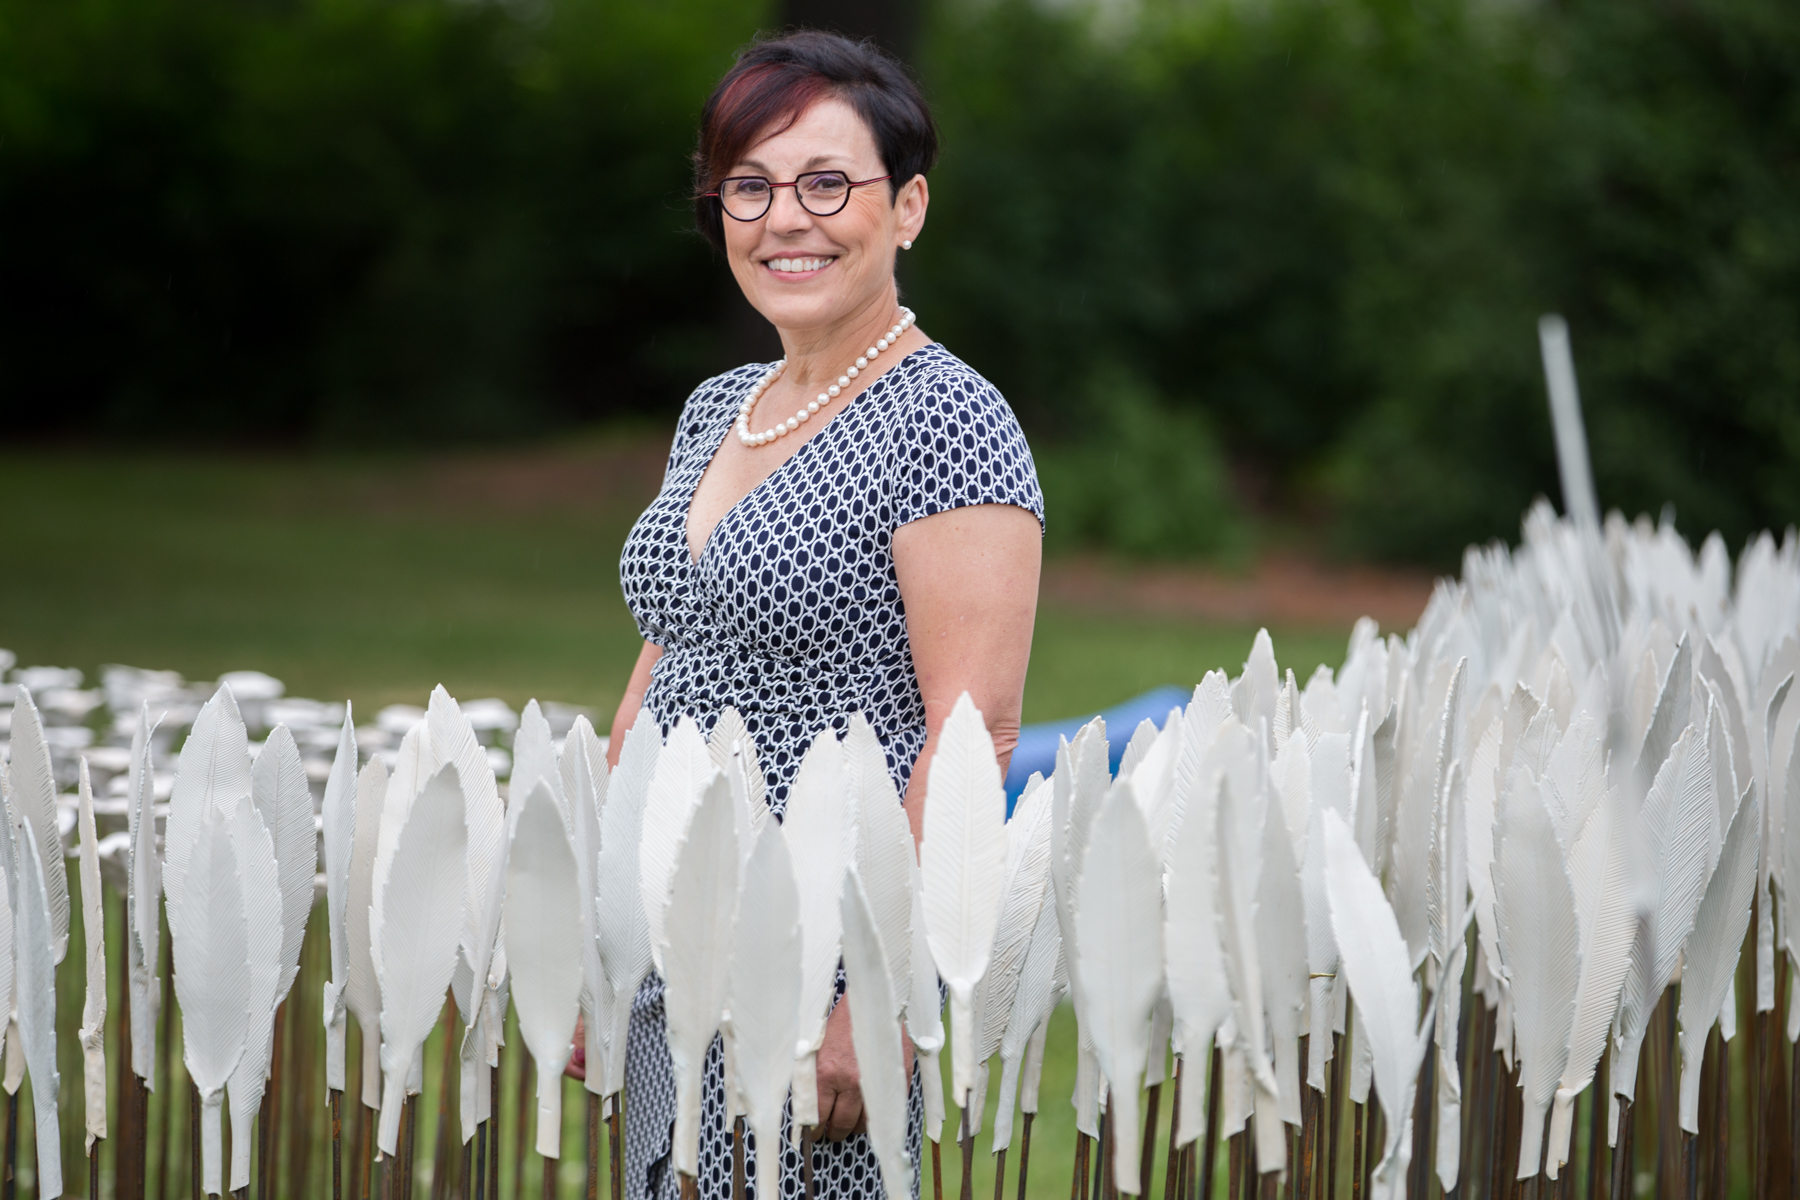 Artist Hilde Lambrechts stands among the ceramic feathers of her art installation Compass: Peace in All Directions on the front lawn of Canada's Centre for Geography and Exploration, during the exhibit's launch on Wednesday, June 27. (Photo: Ben Powless/Canadian Geographic)